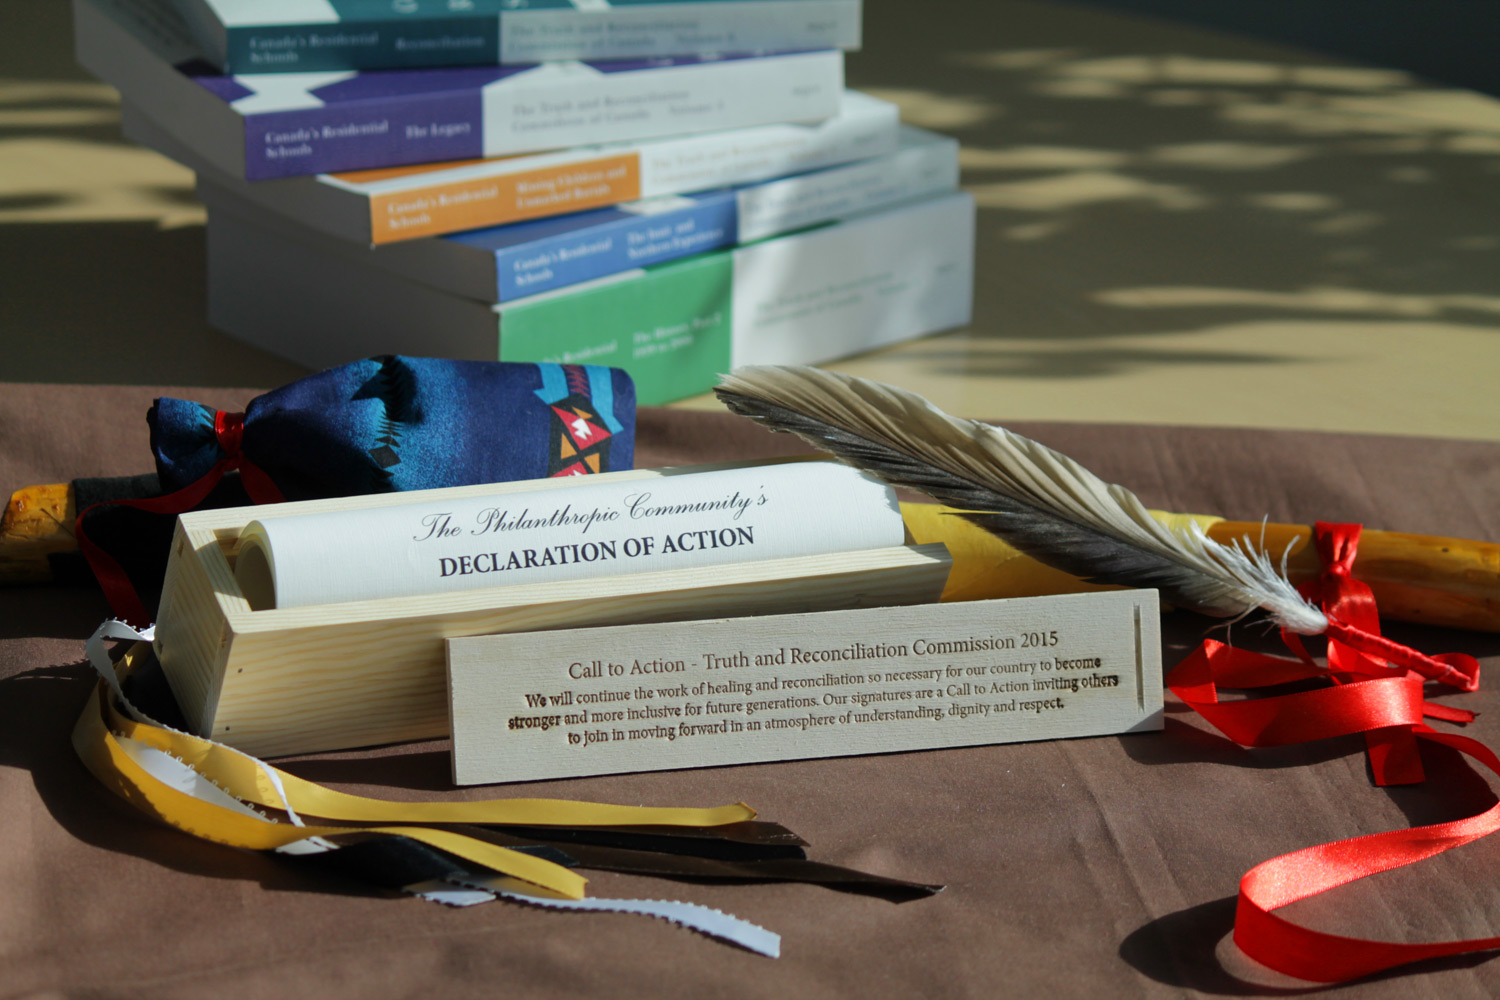 A copy of The Philanthropic Community's Declaration of Action gifted to United Way by The Circle on Philanthropy and Aboriginal Peoples in Canada sits alongside a medicine bag given by Angie Hutchinson. Also shown are a talking stick created and gifted to United Way by former Council for Indigenous Relations chair Christine Cyr and volumes of the TRC report.